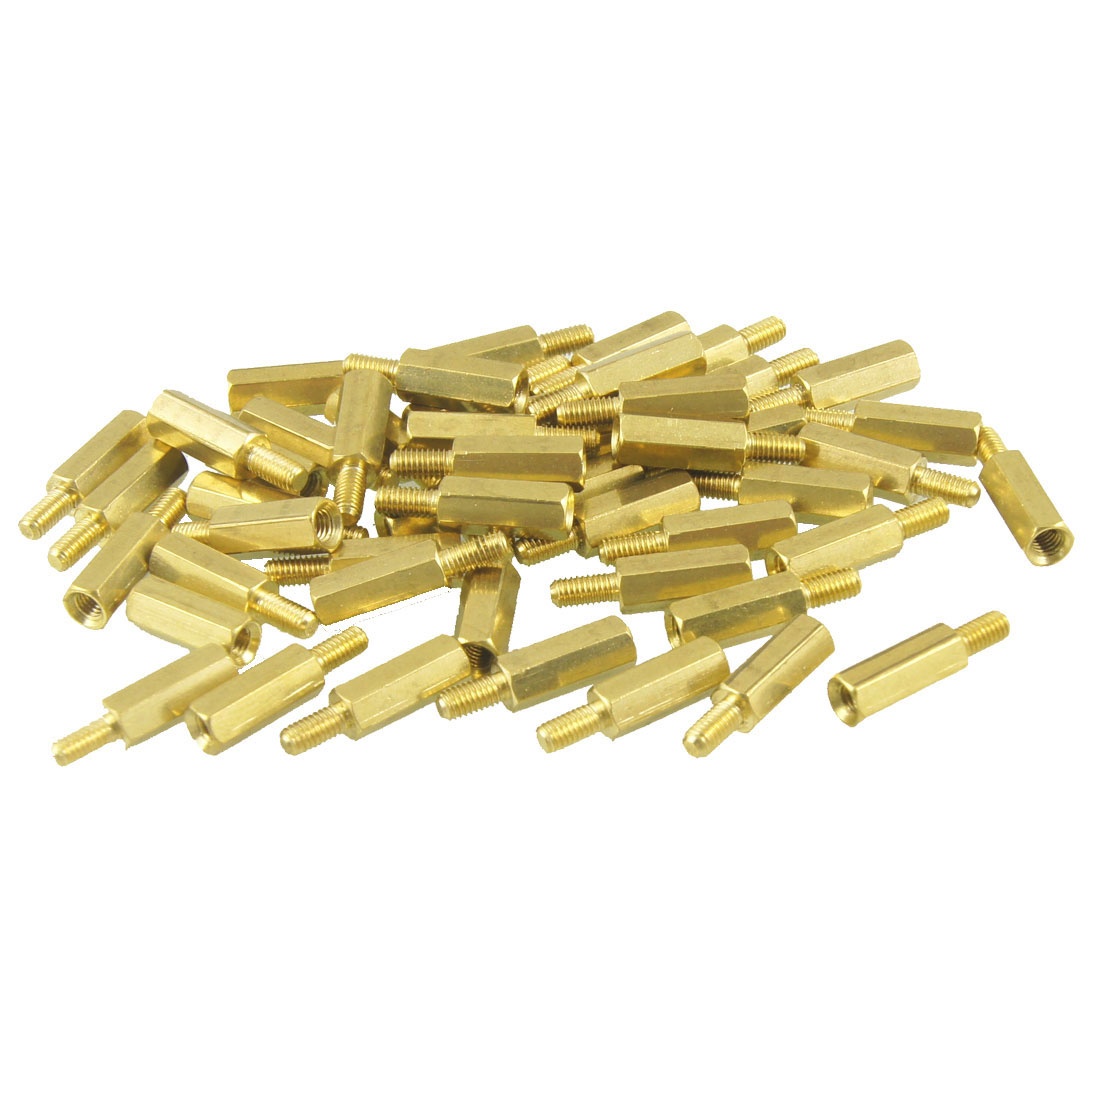 50 Pcs M3 Male x M3 Female Hexagonal Thread PCB Standoff Spacer 20mm Length